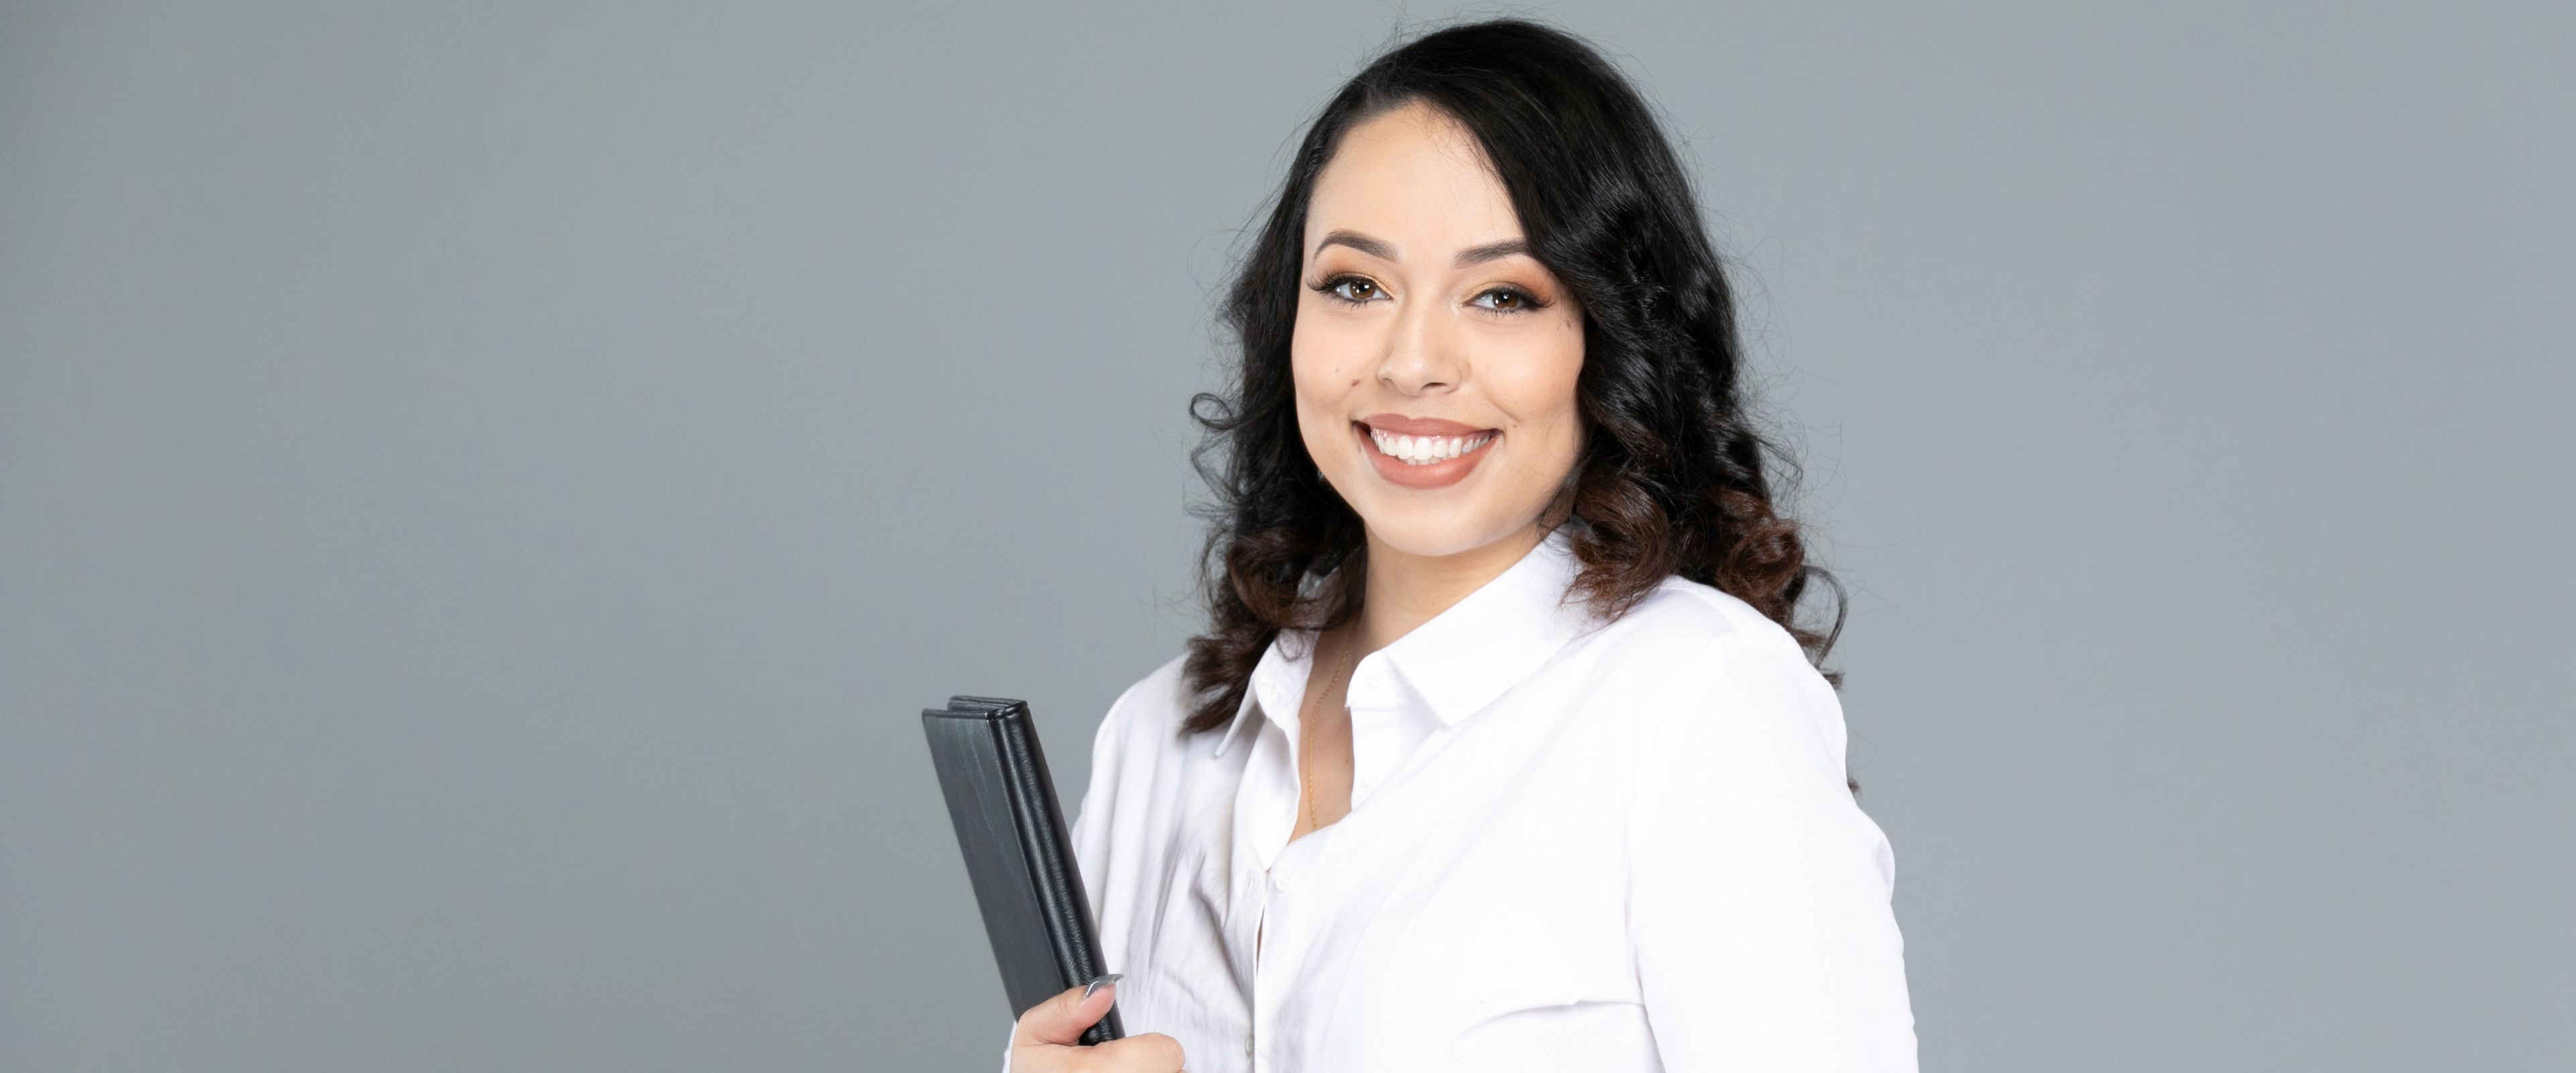 Pictured is a student smiling and holding a portfolio